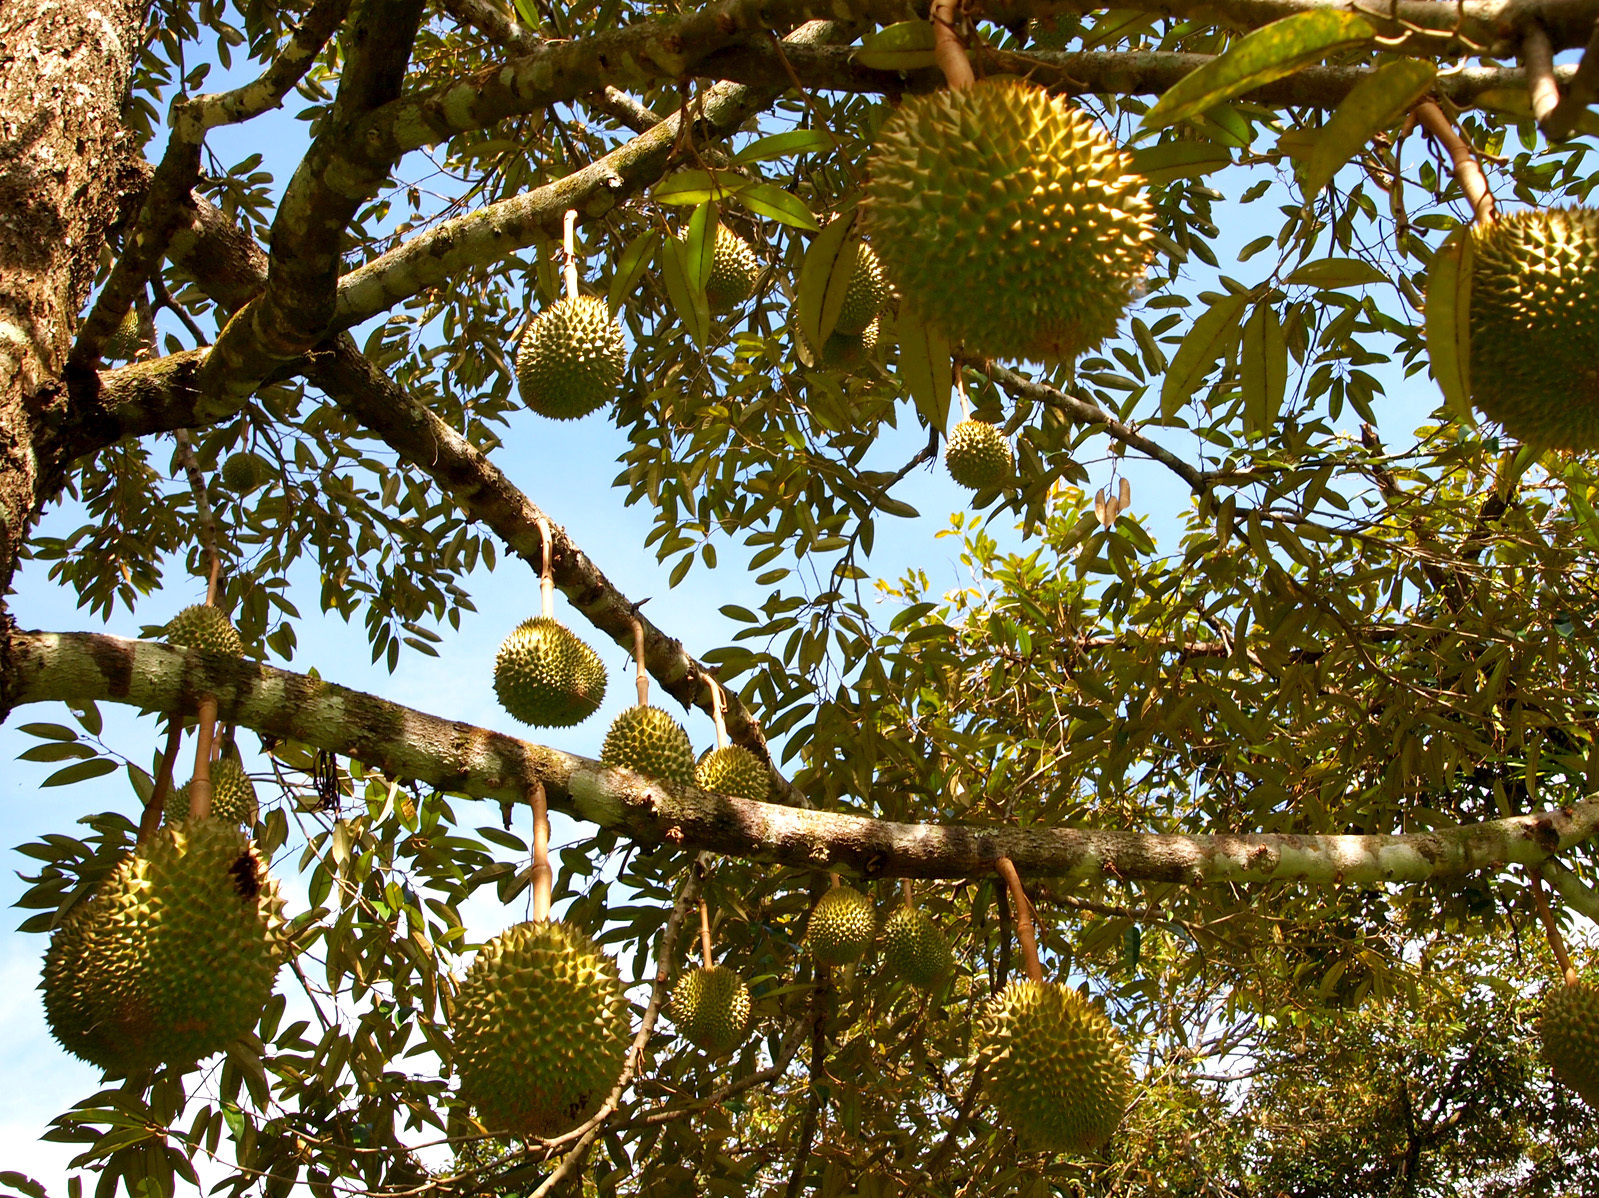 Durian fruit hangs from a tree. Courtesy of Lindsay Gasik